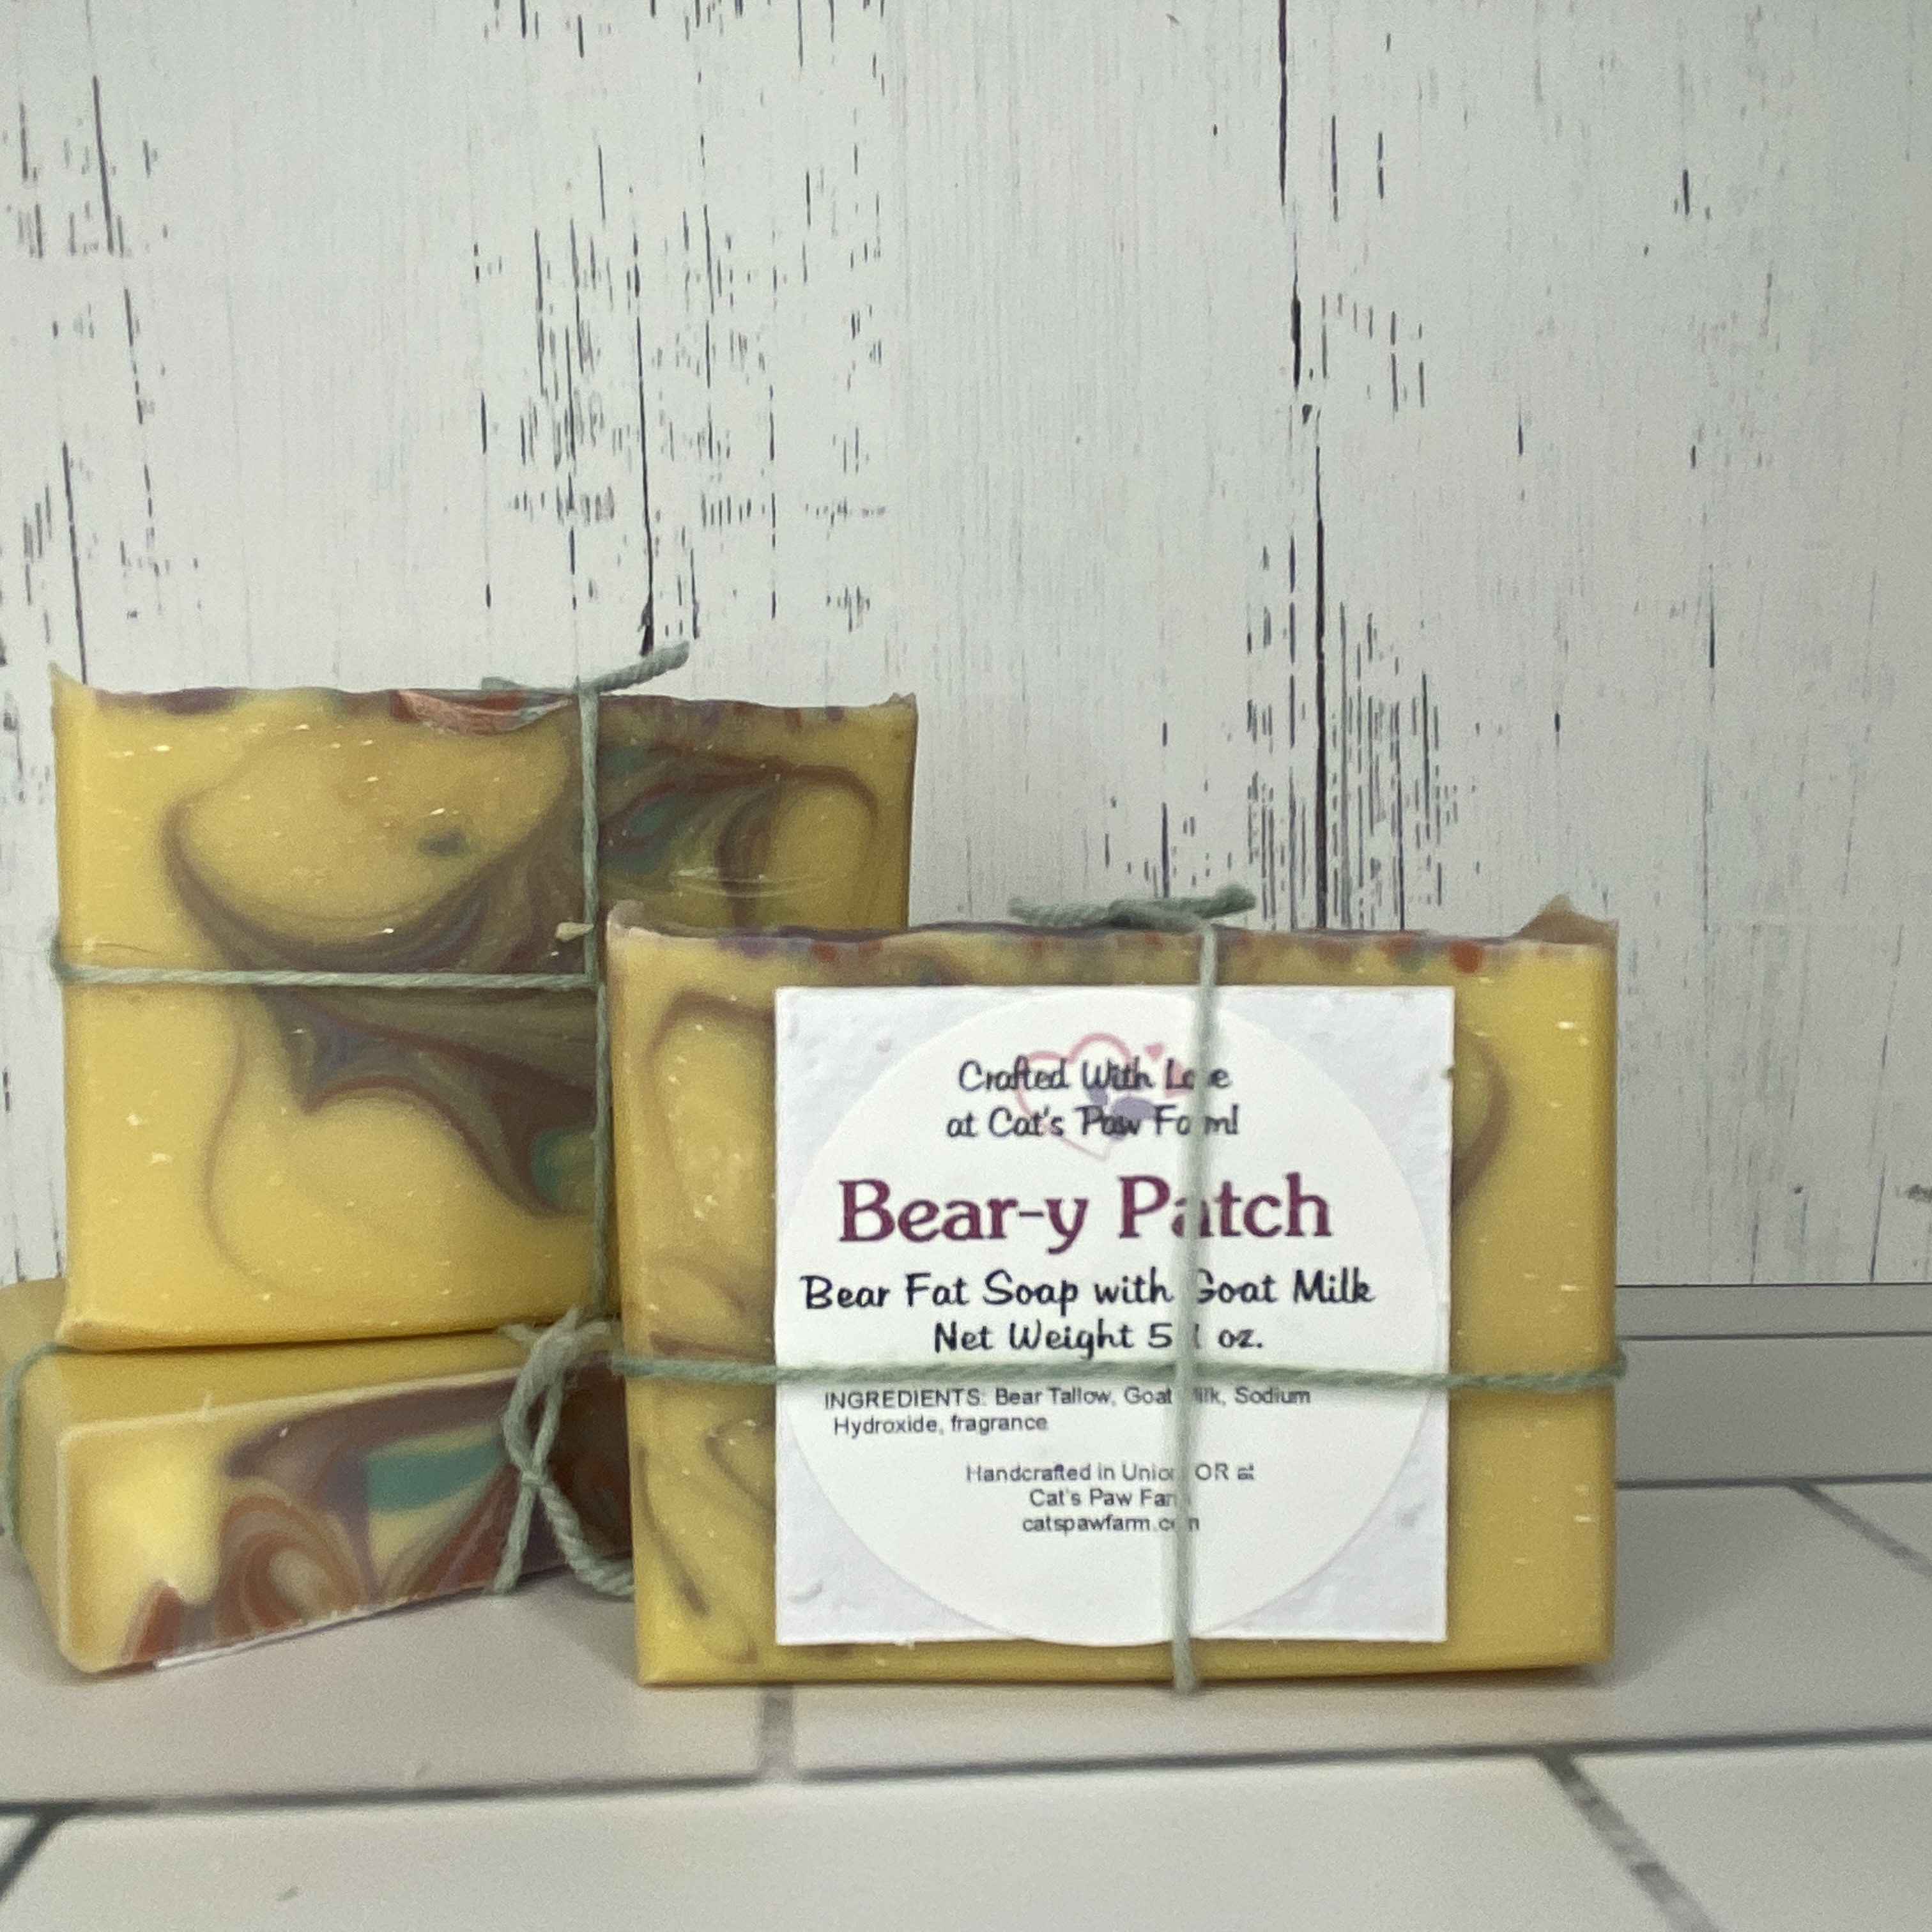 Bear-y Patch Scented Bear Fat Soap with Goat Milk